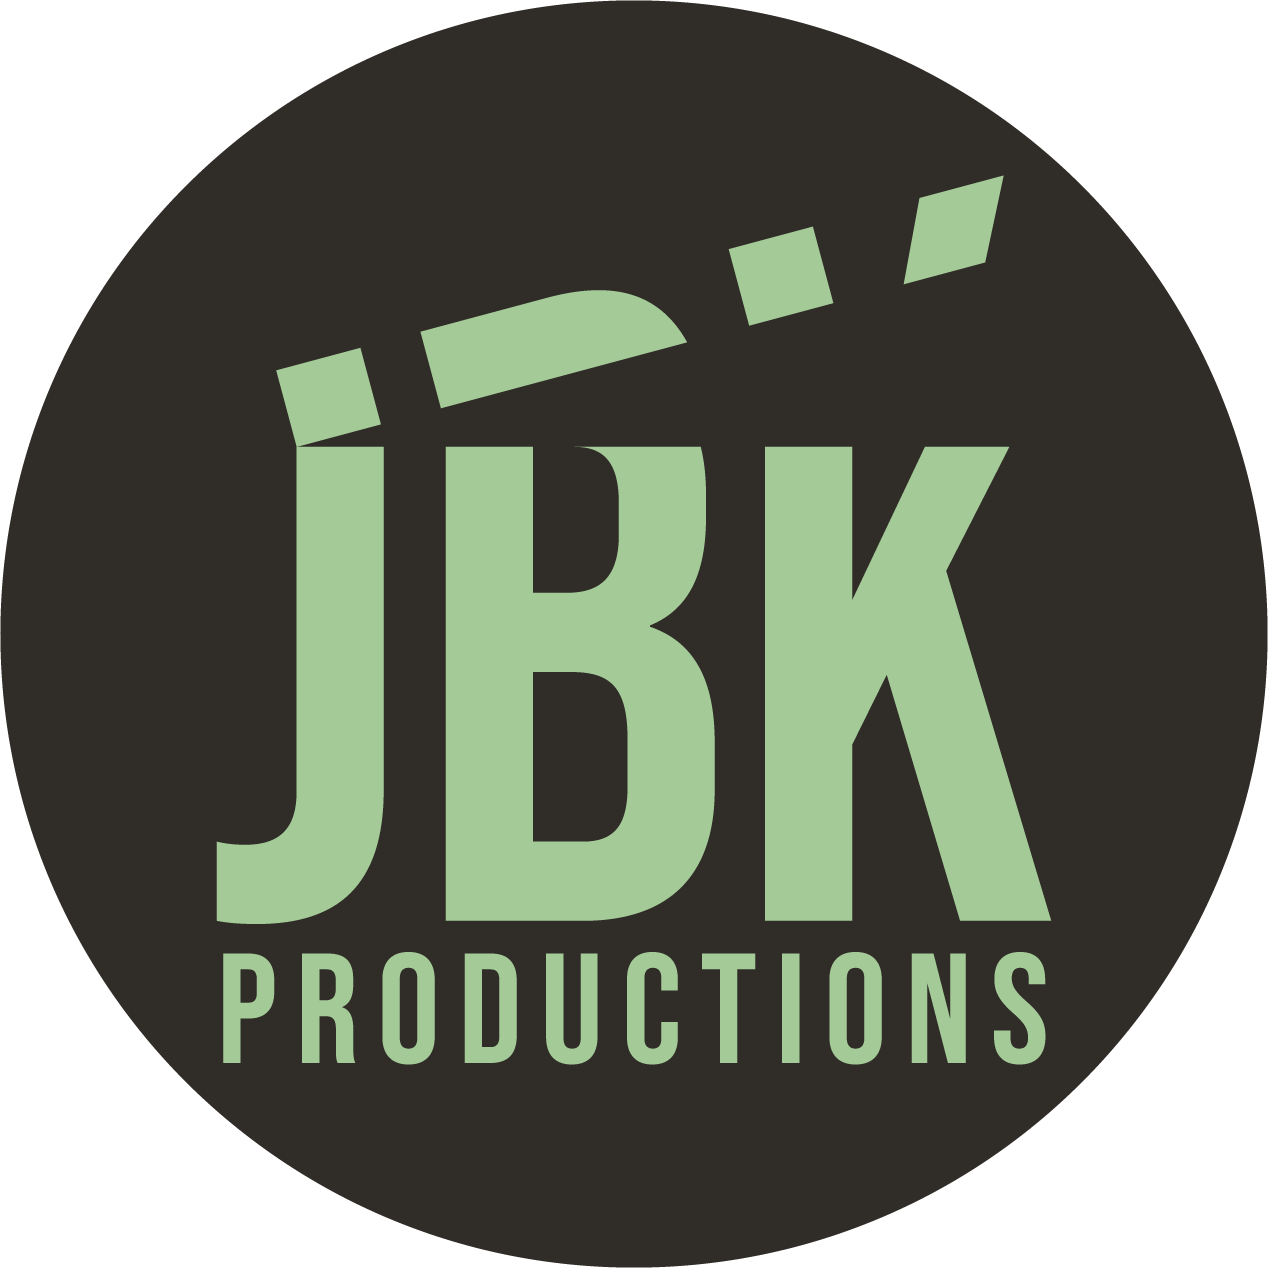 JBK_ICON.png